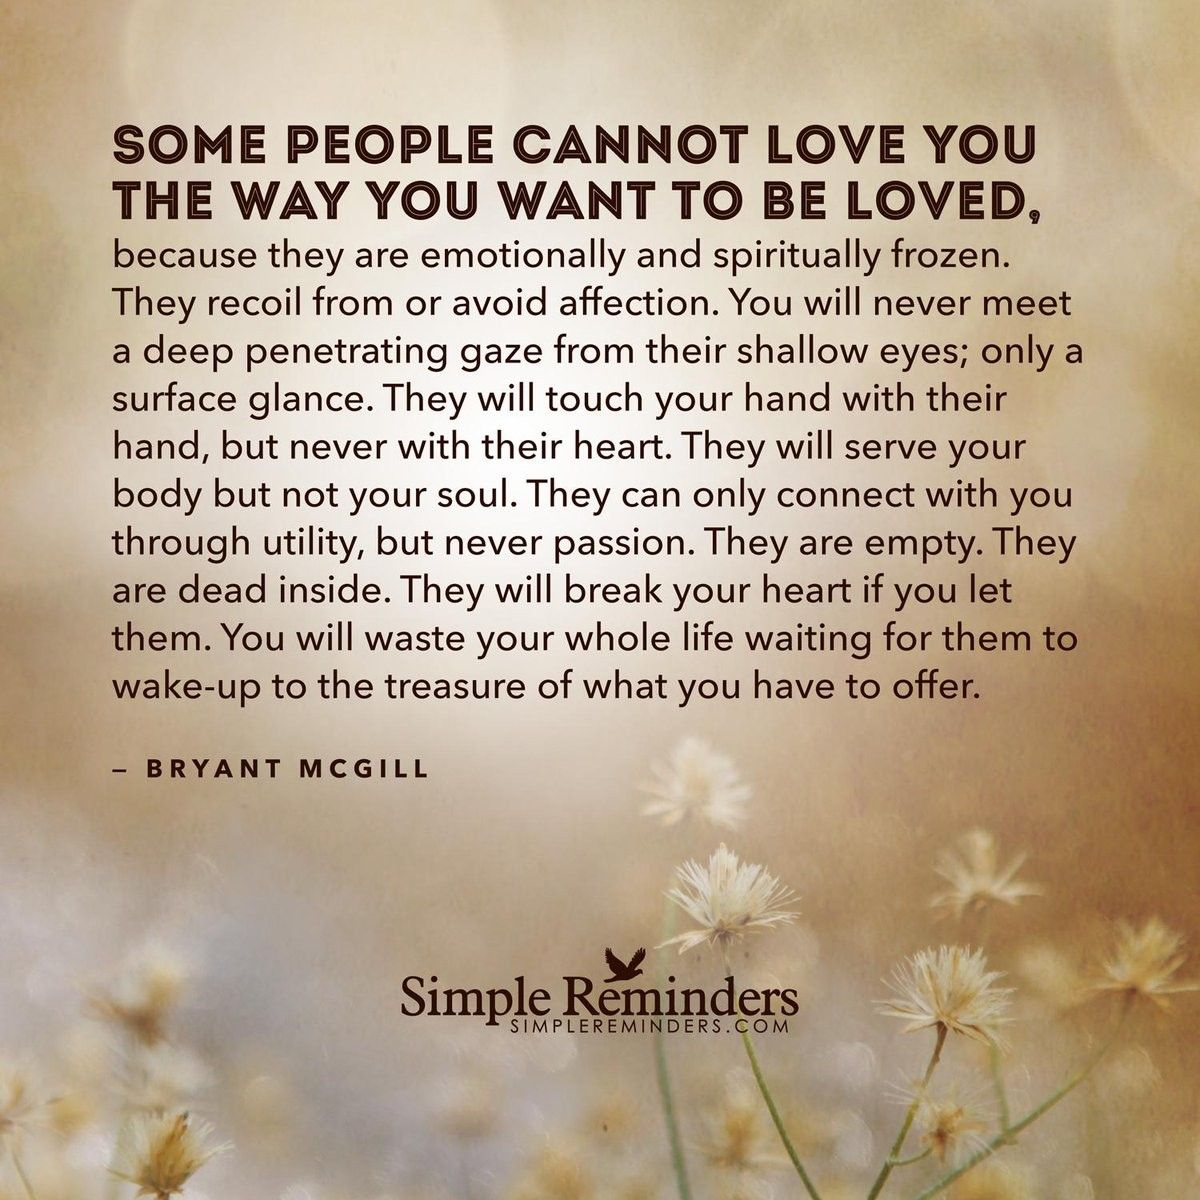 Abusive Relationship Quotes Sad Truths And Realities  Empowerment Quotes  Pinterest  Truths